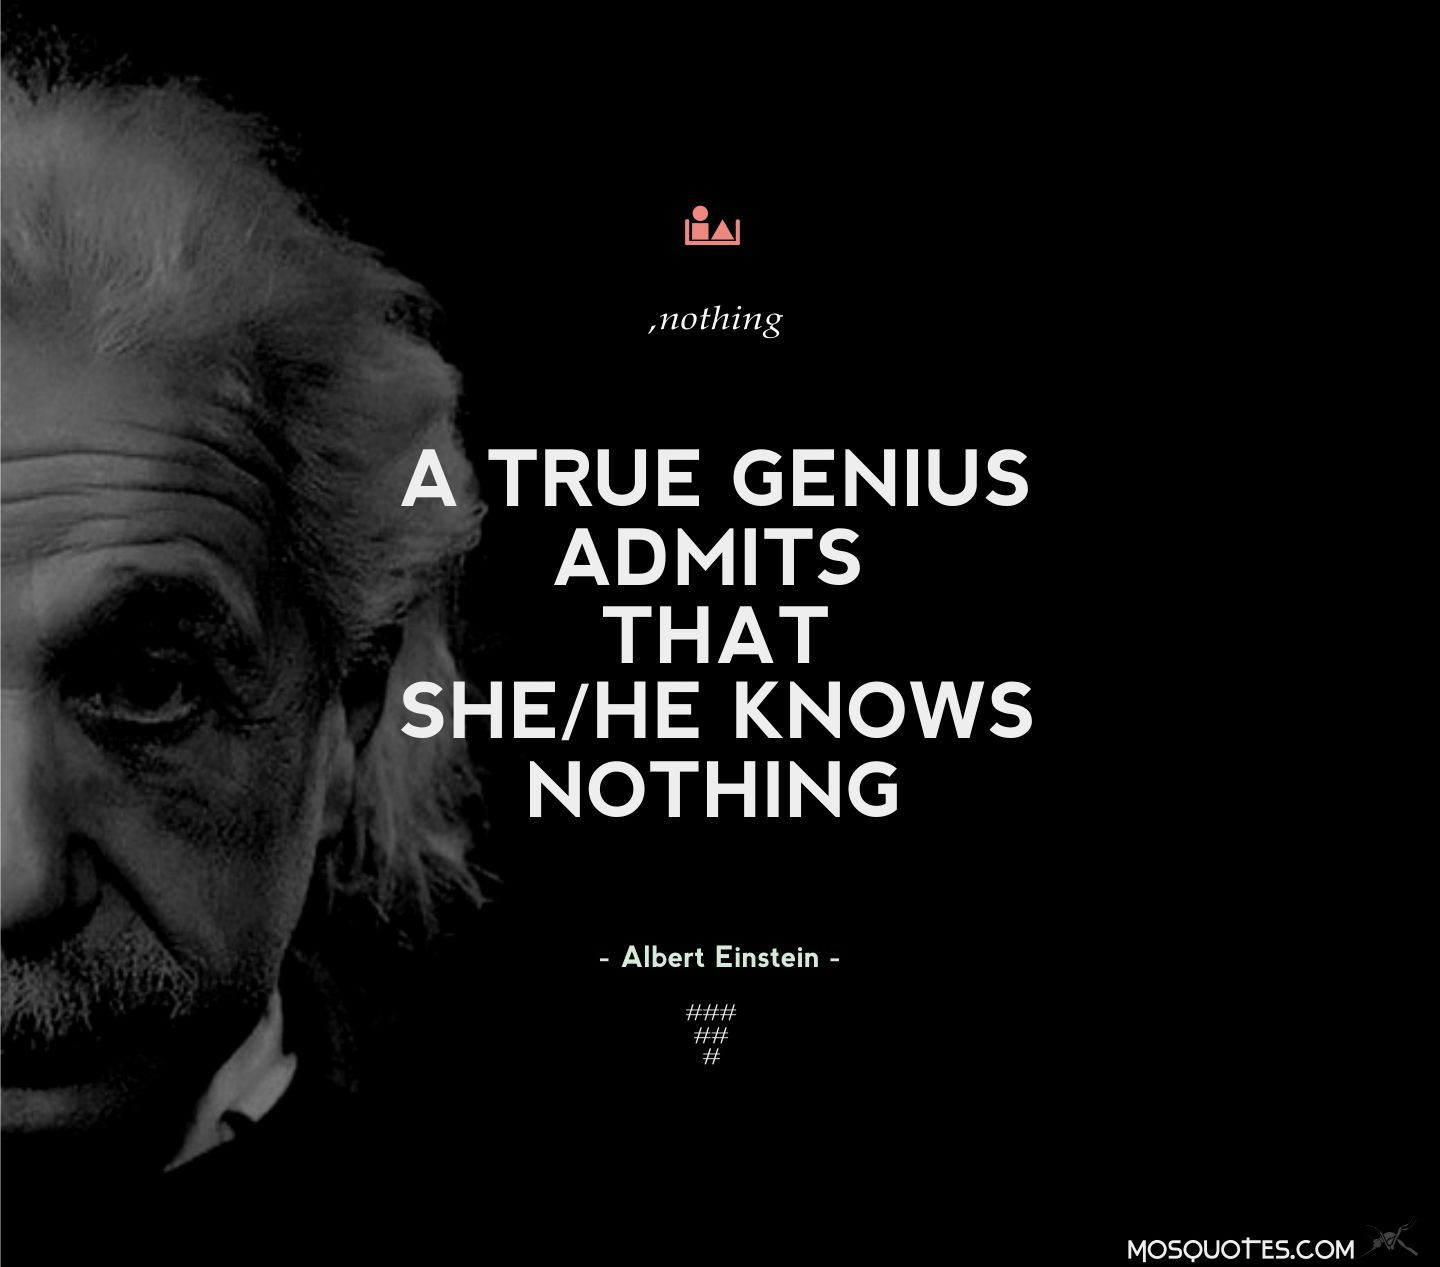 393 Best Images About He Knows Nothing On Pinterest: Albert Einstein Inspirational Quotes A True Genius Admits